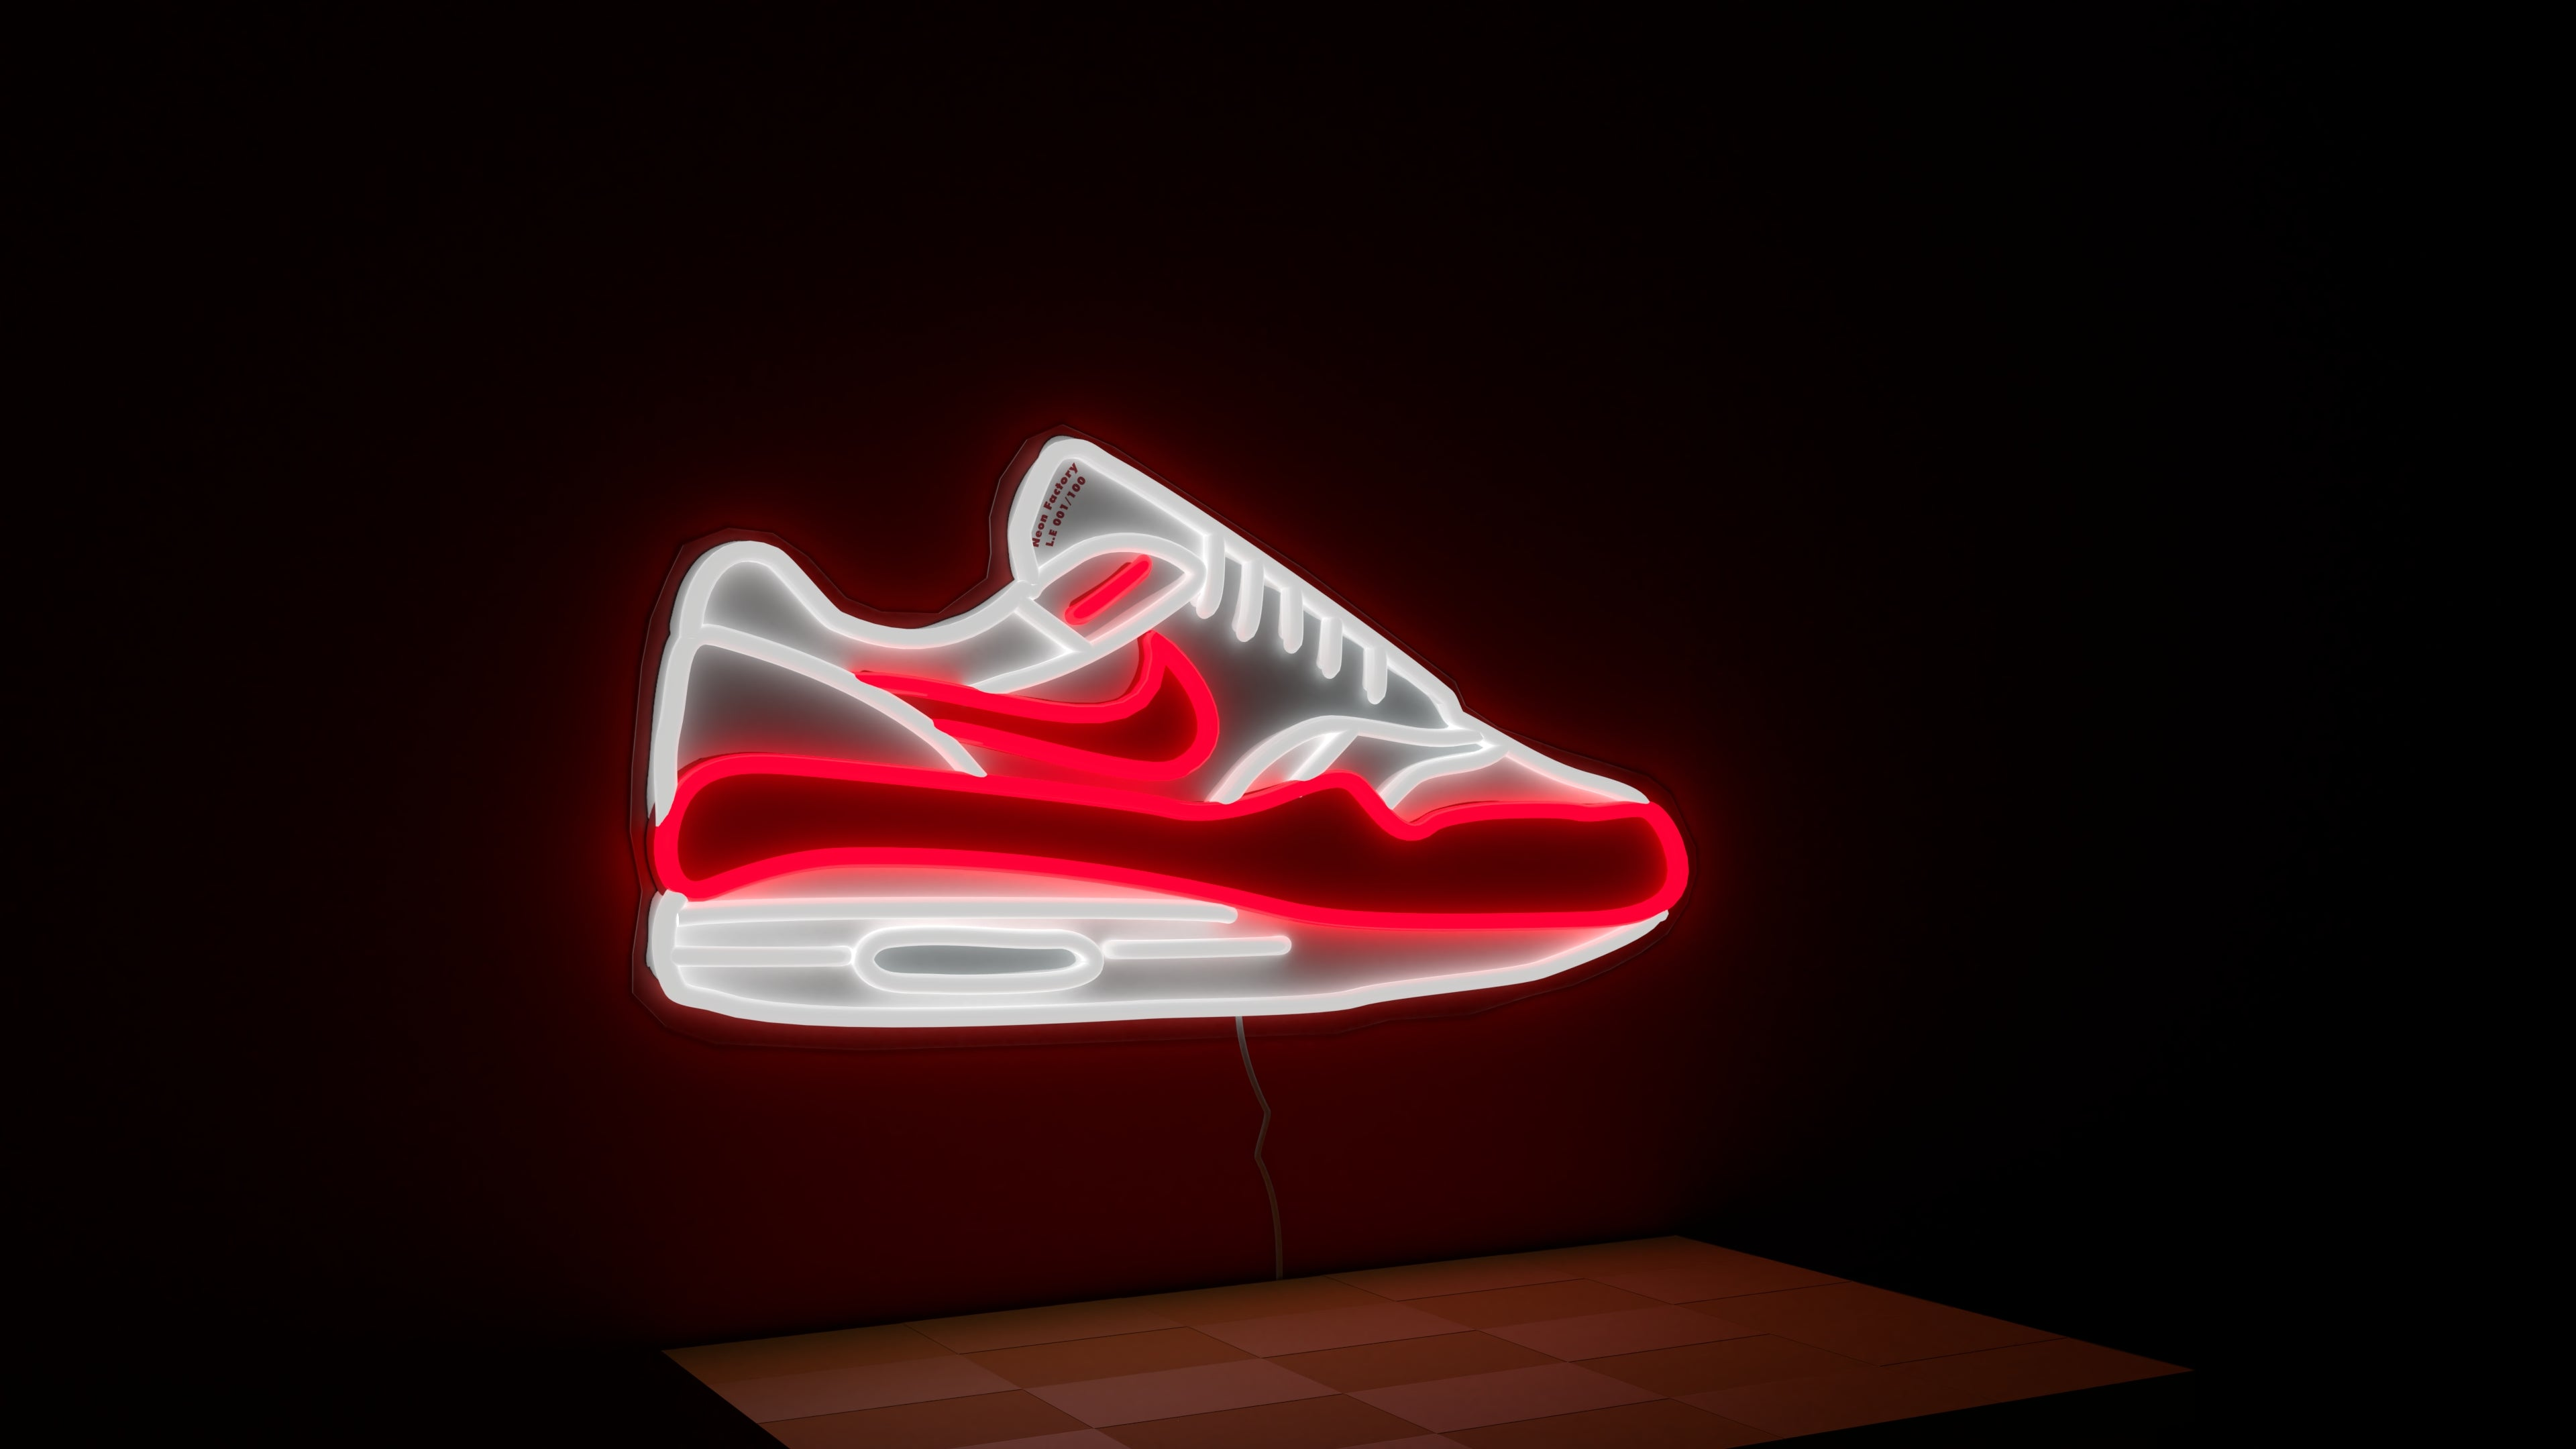 Airmax 1 neon sign